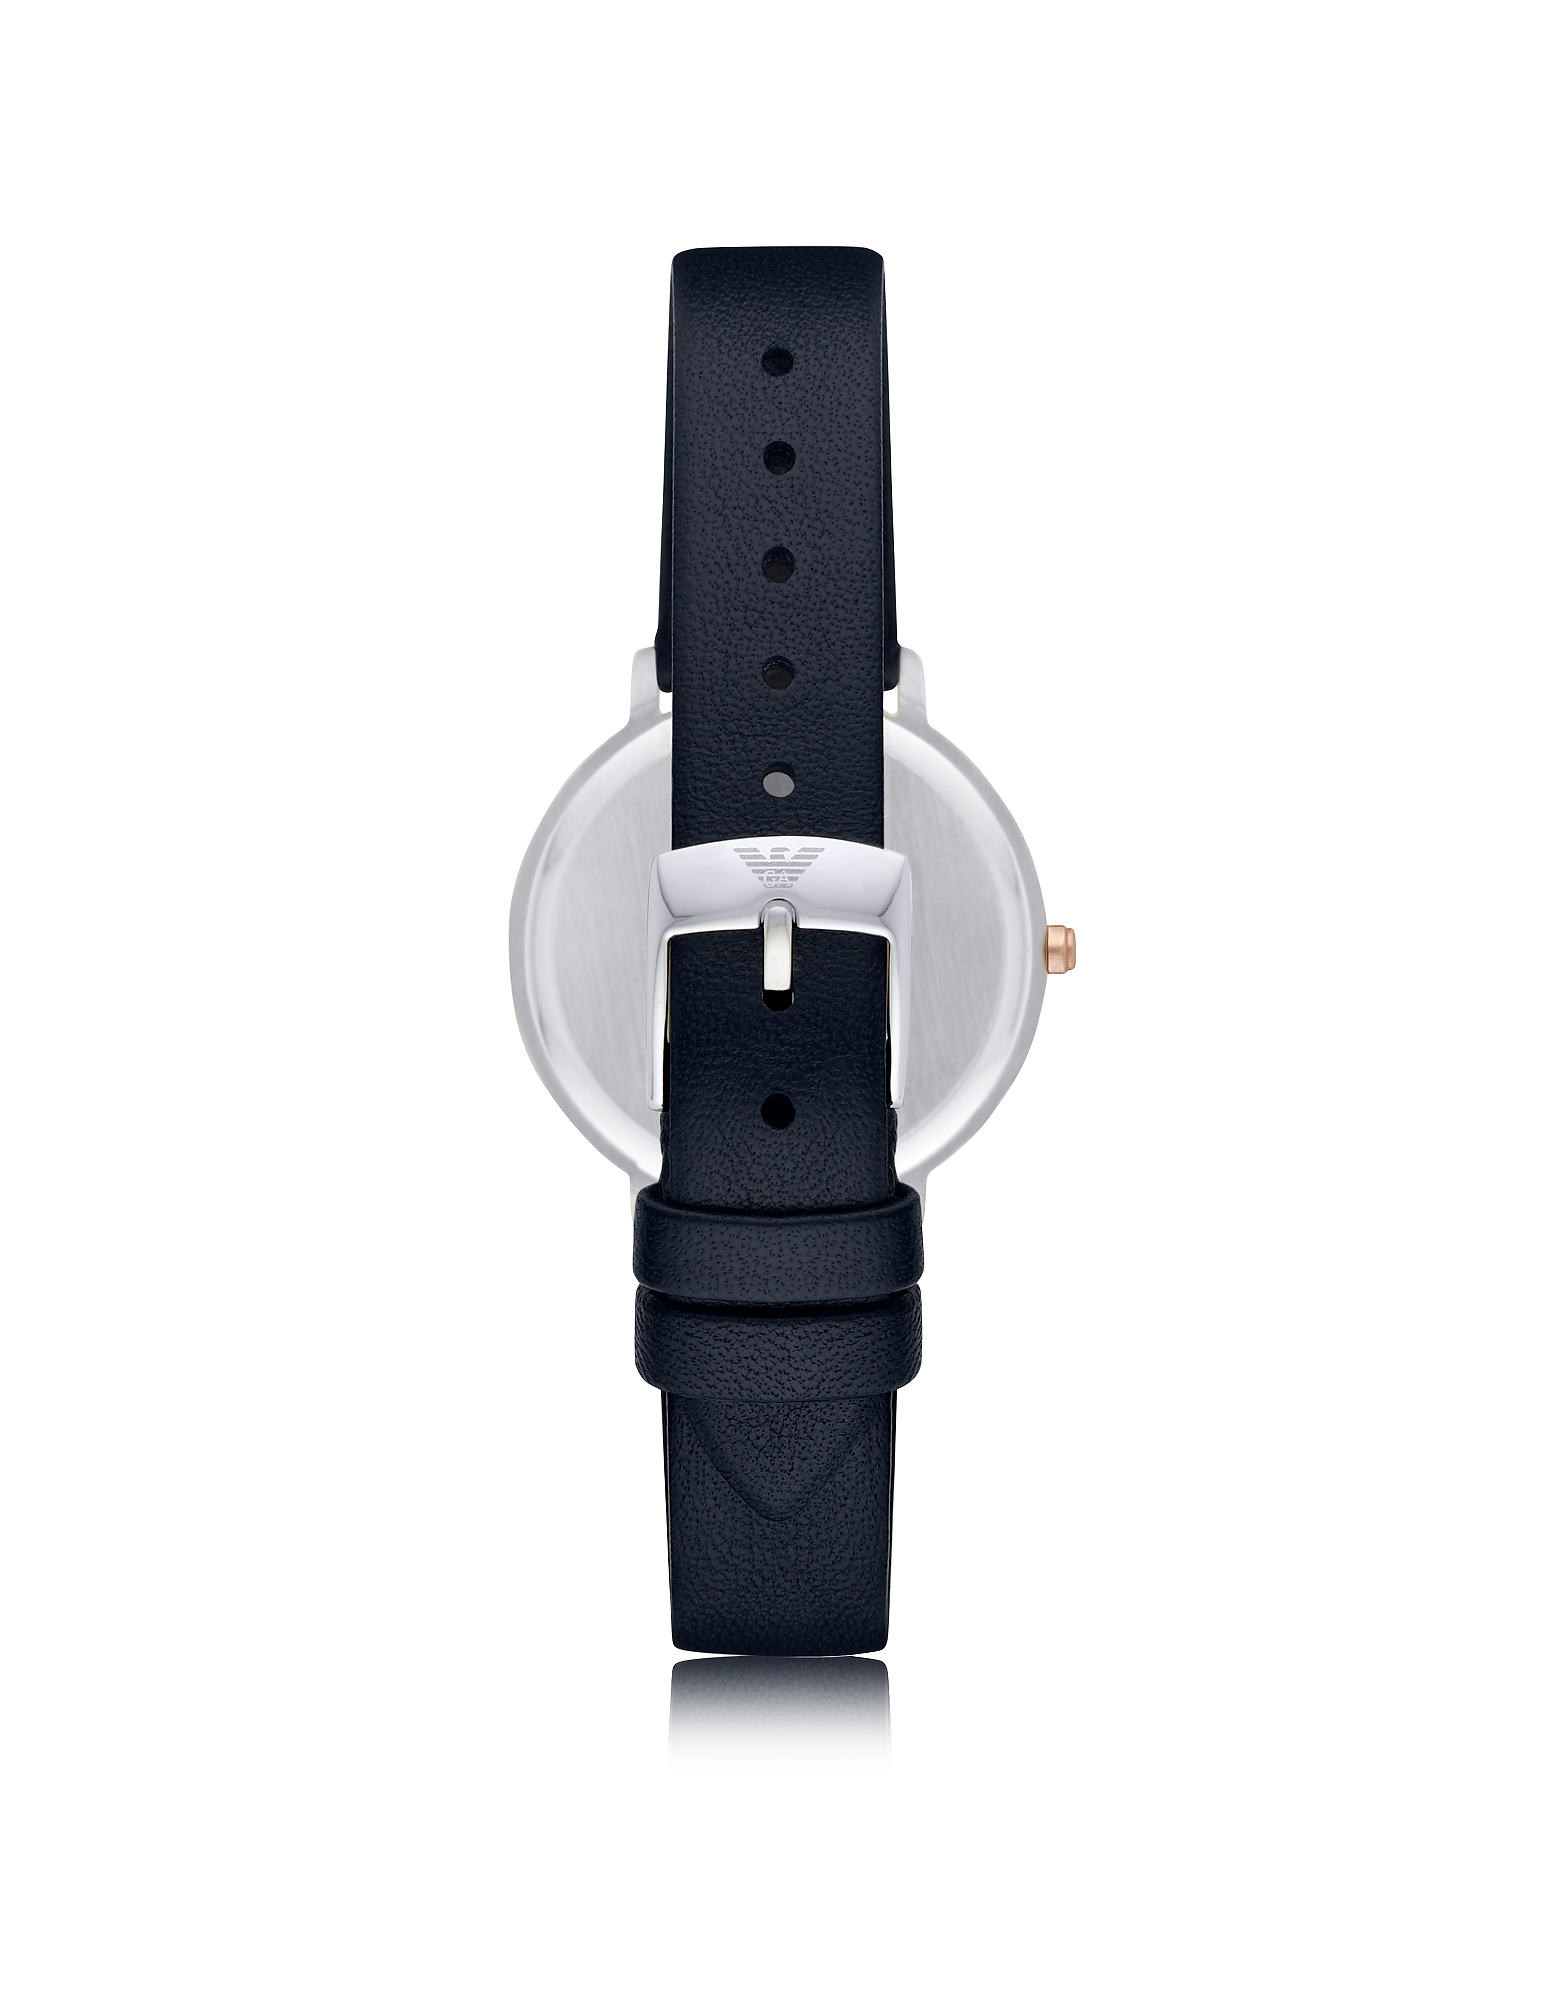 Kappa Stainless Steel Women's Quartz Watch w/Midnight Blue Leather Strap от Forzieri.com INT